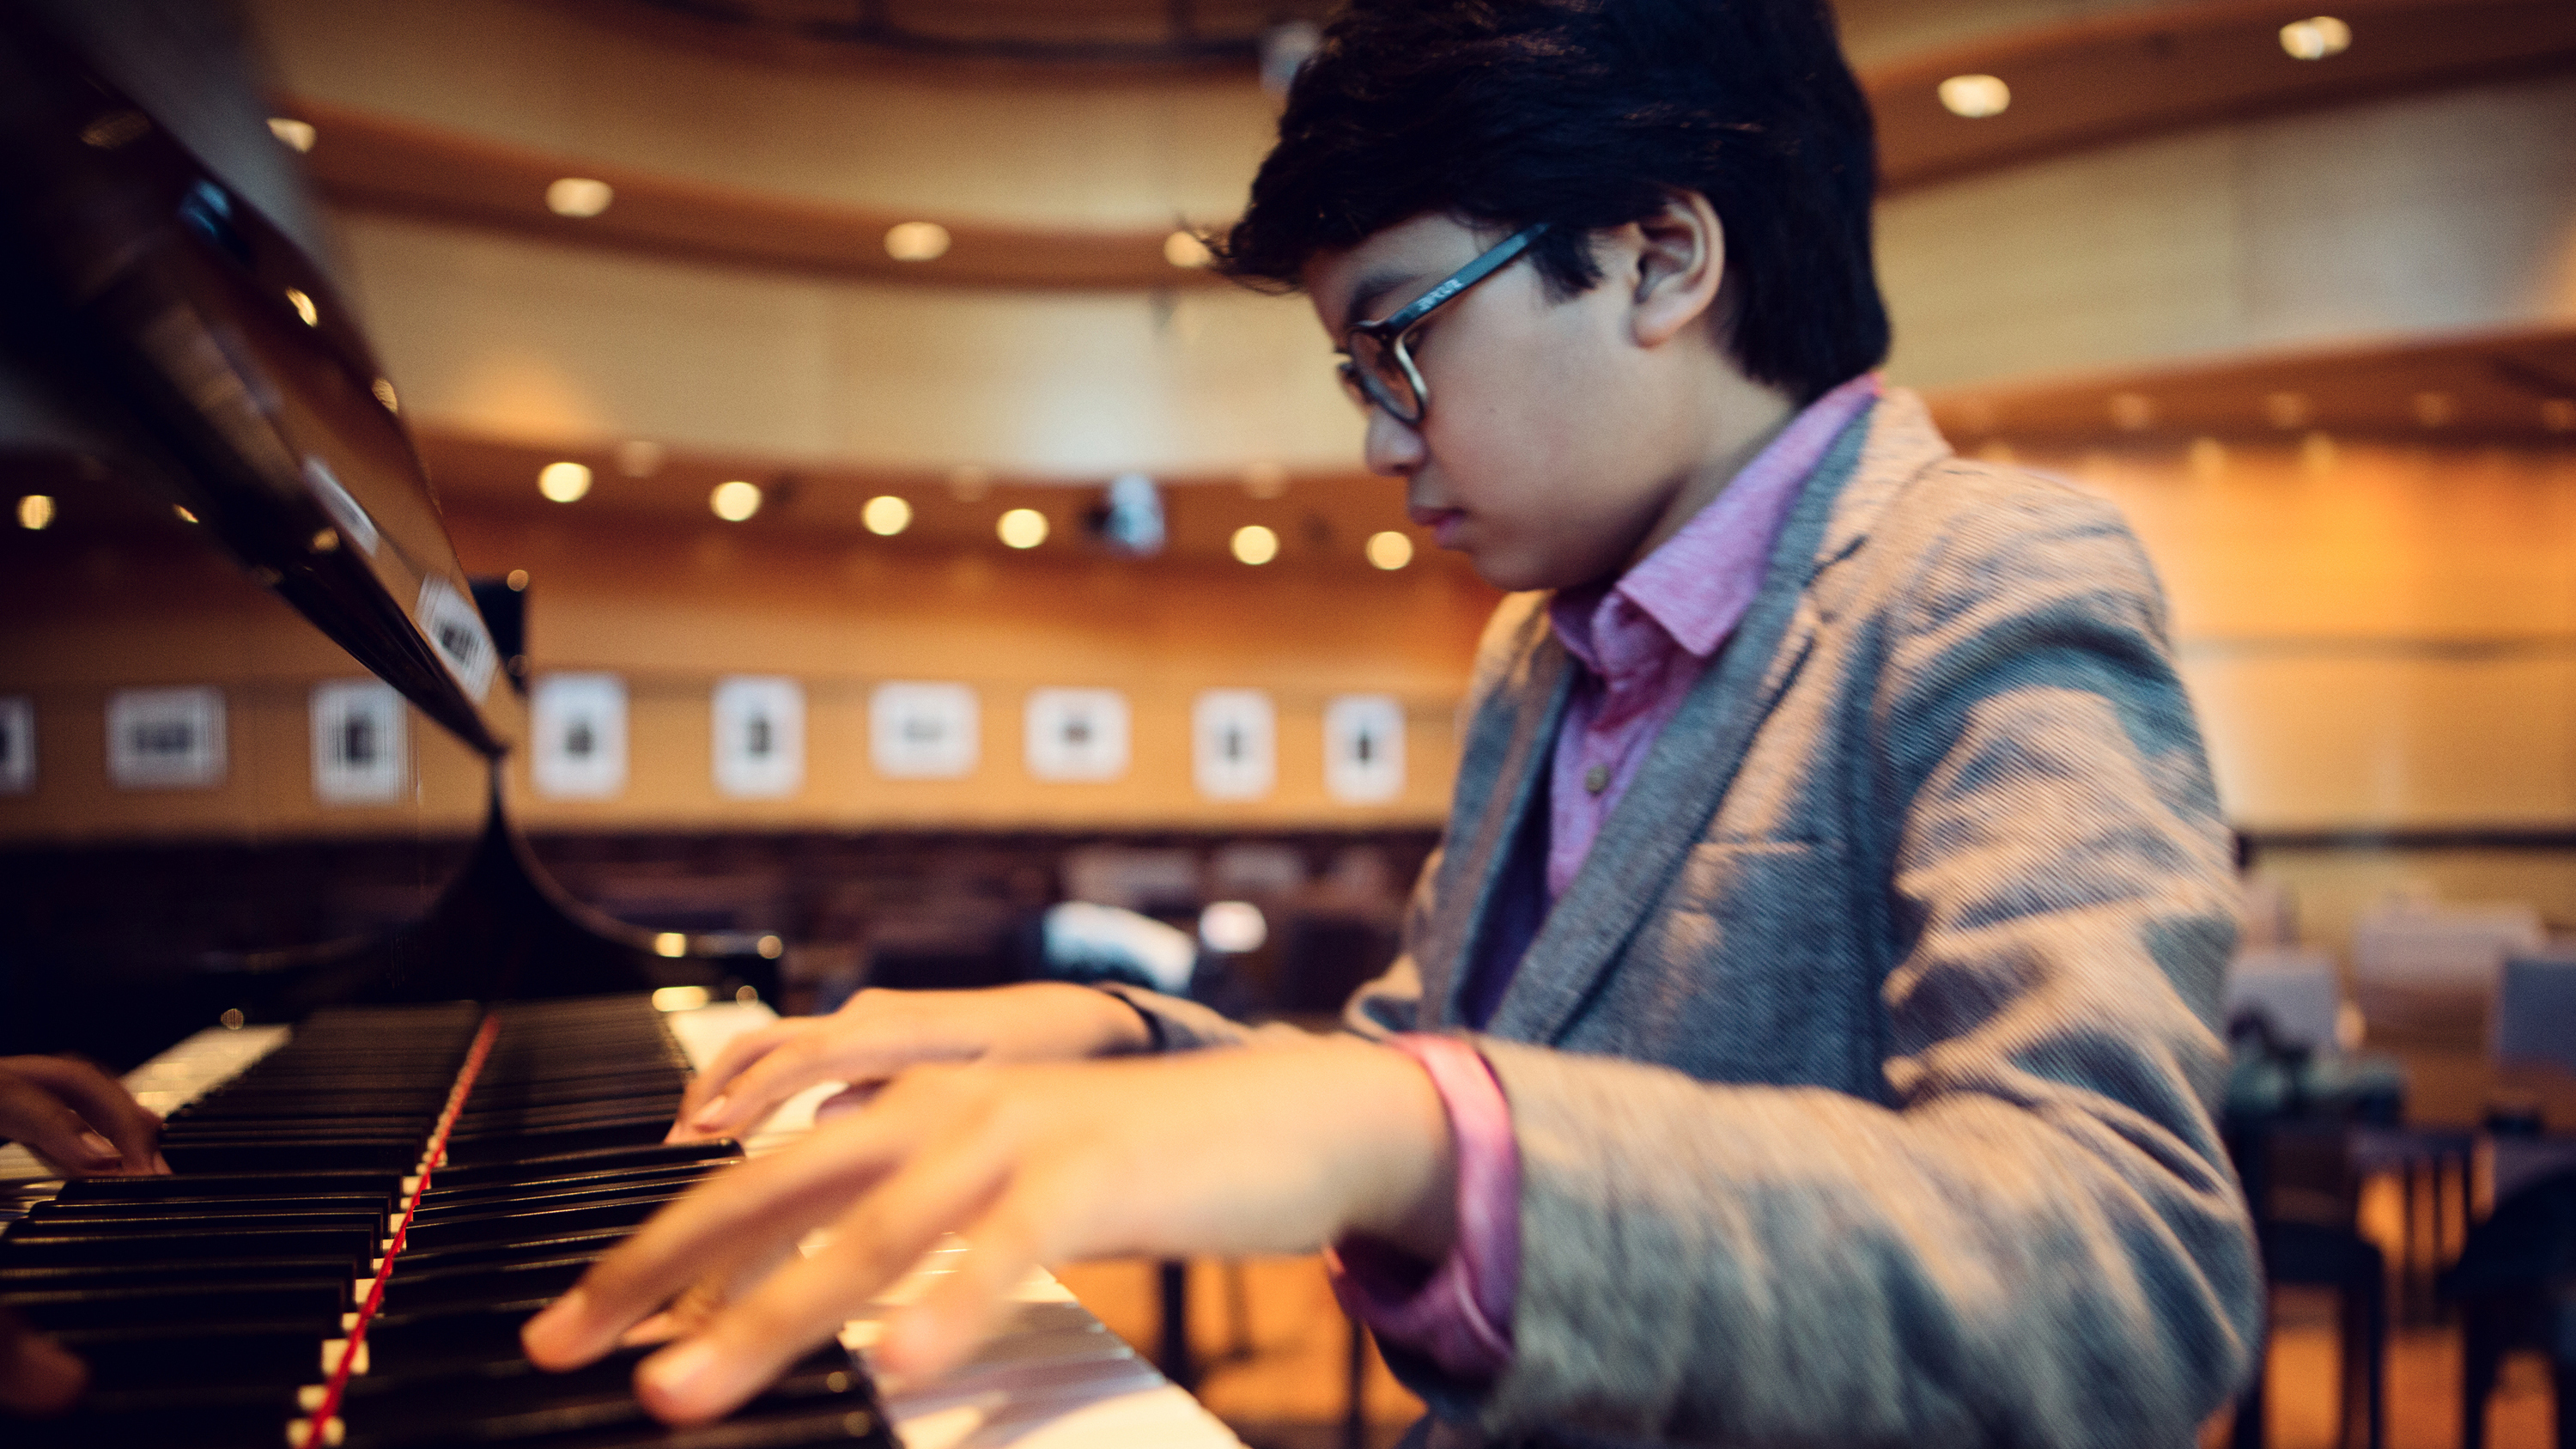 What Does It Mean To Be A Child Prodigy In Jazz?